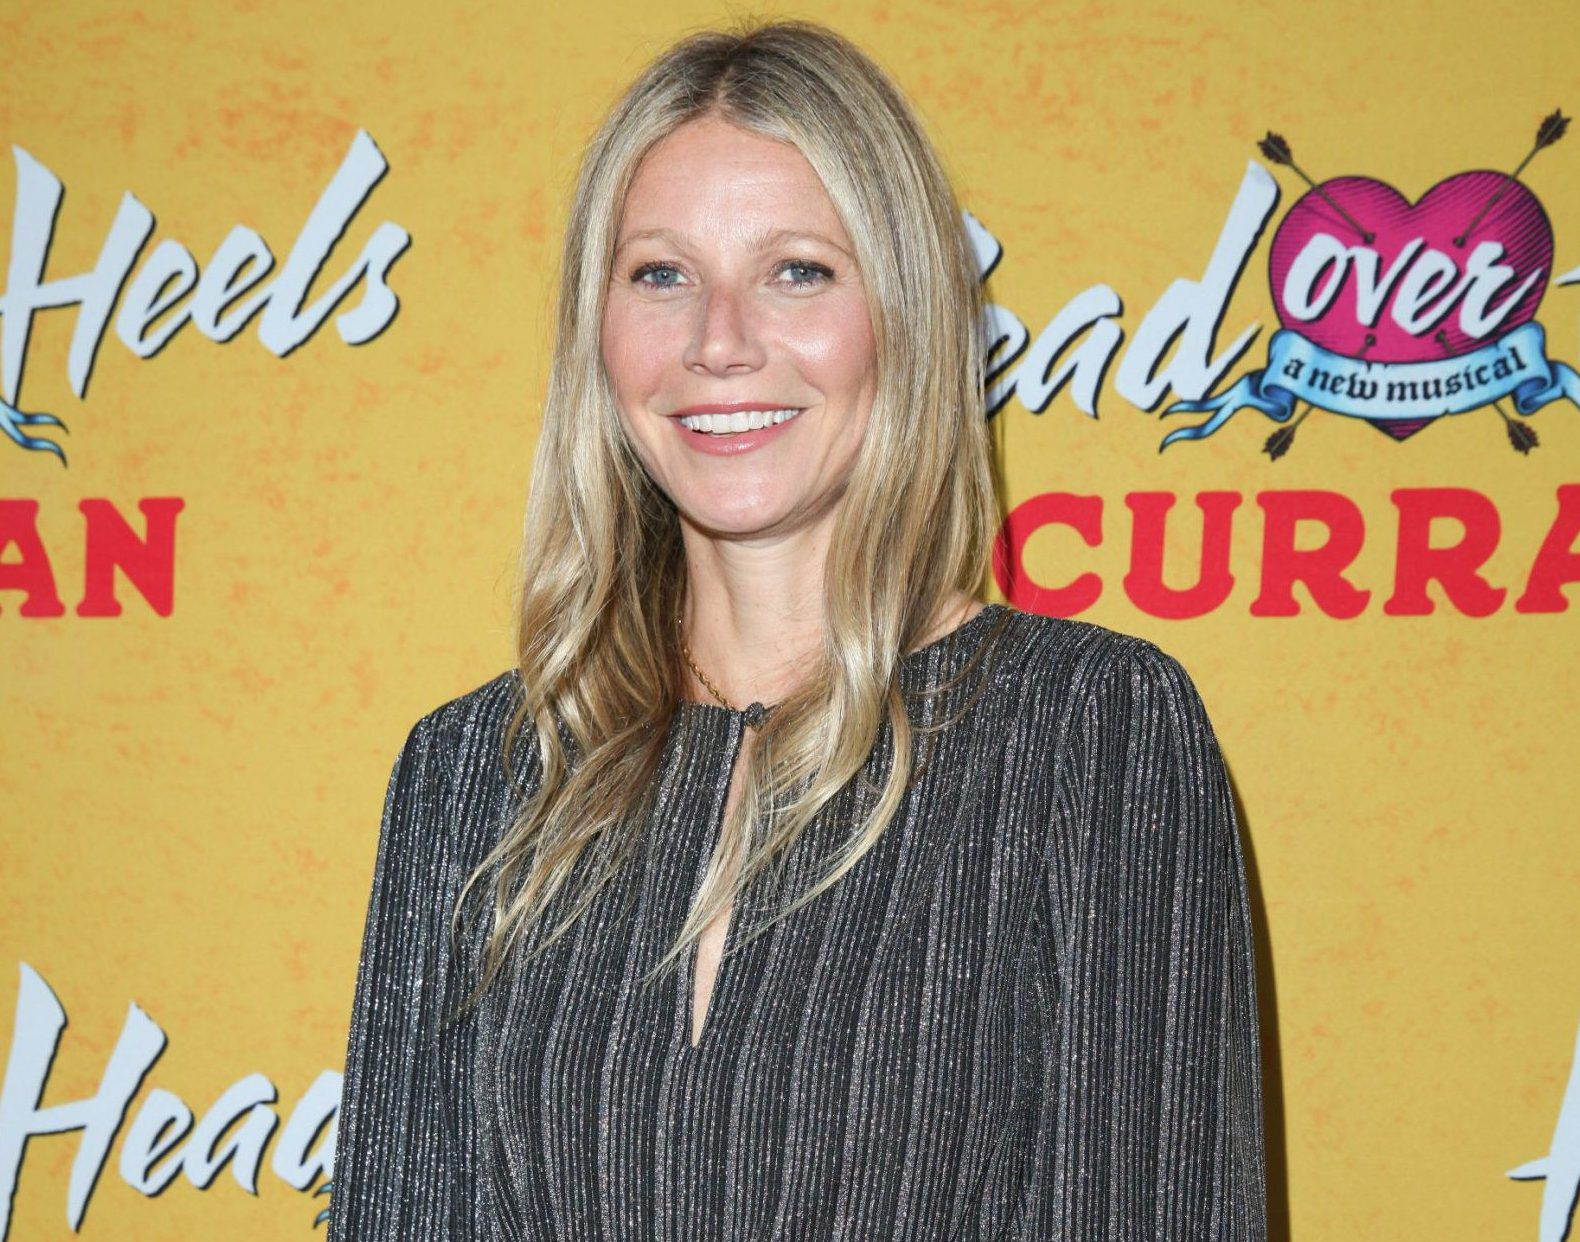 "SAN FRANCISCO, CA - APRIL 18: Actress Gwyneth Paltrow arrives on the red carpet for the Pre-Broadway Opening Engagement Of ""Head Over Heels"" at the Curran Theatre on April 18, 2018 in San Francisco, California. (Photo by Kelly Sullivan/Getty Images)"